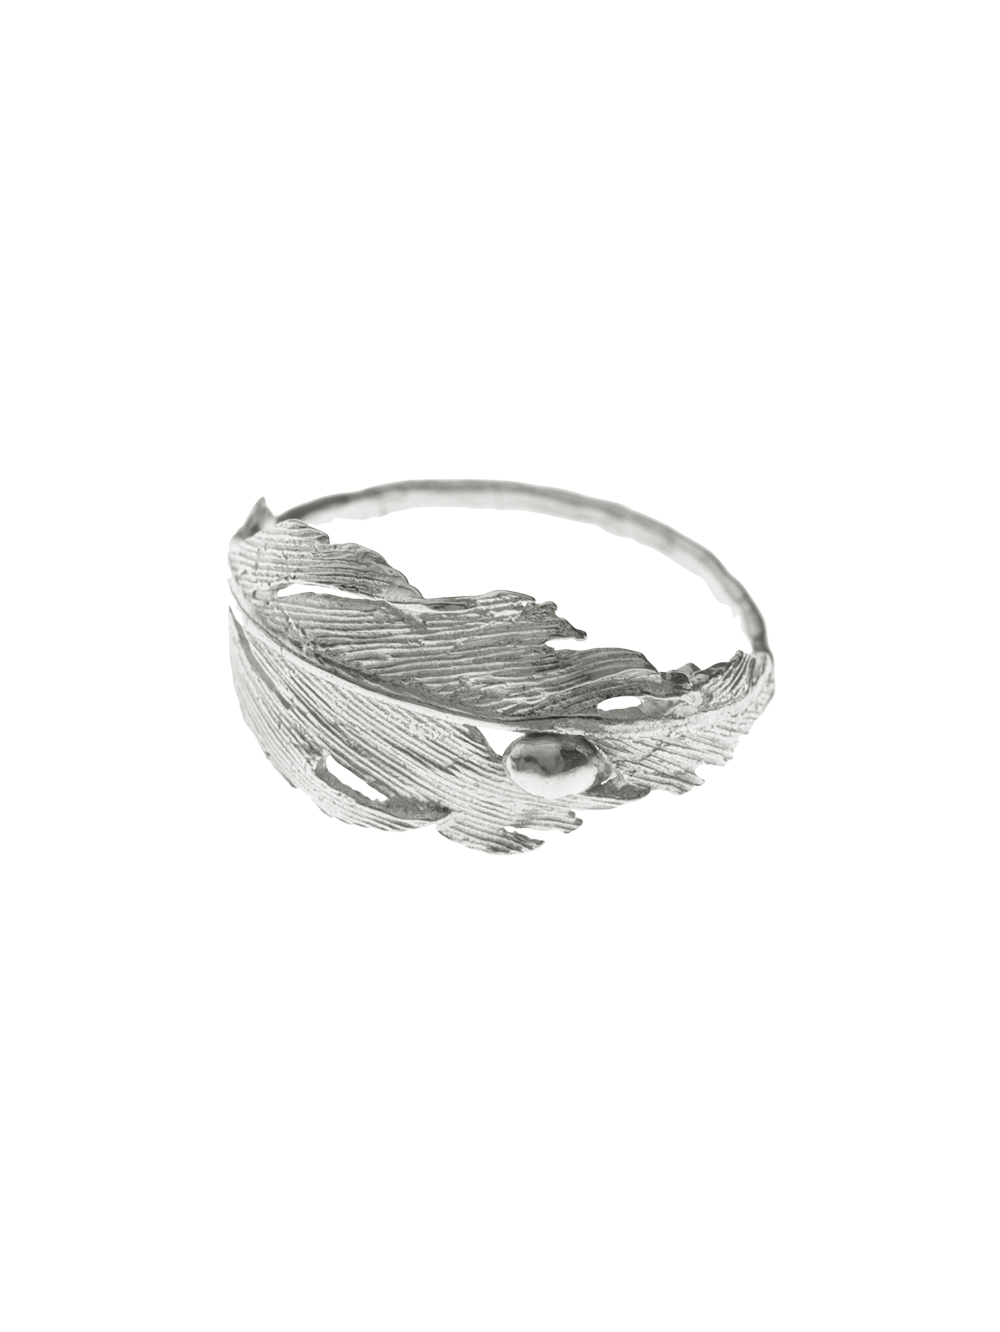 Statement falcon feather ring by Icelandic jeweller Aurum. The ring is made from 925 sterling silver